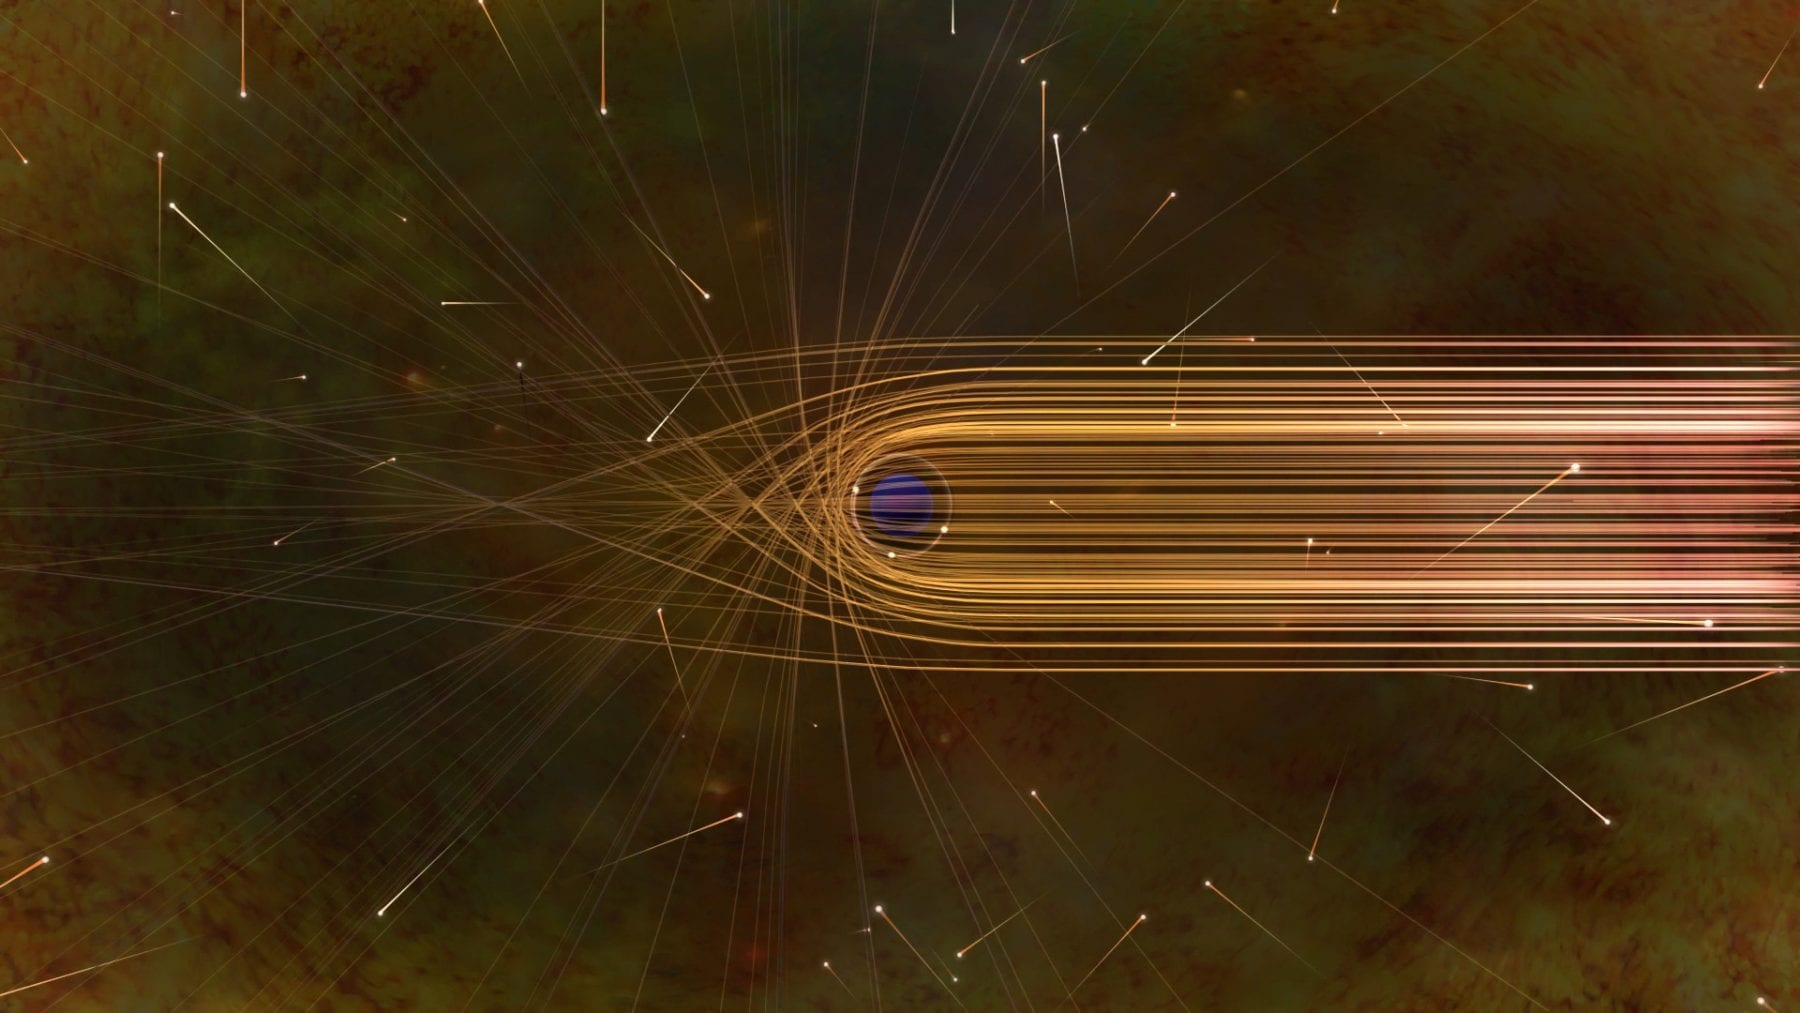 Photon paths in the vicinity of a black hole. Credit: Nicole R. Fuller / NSF